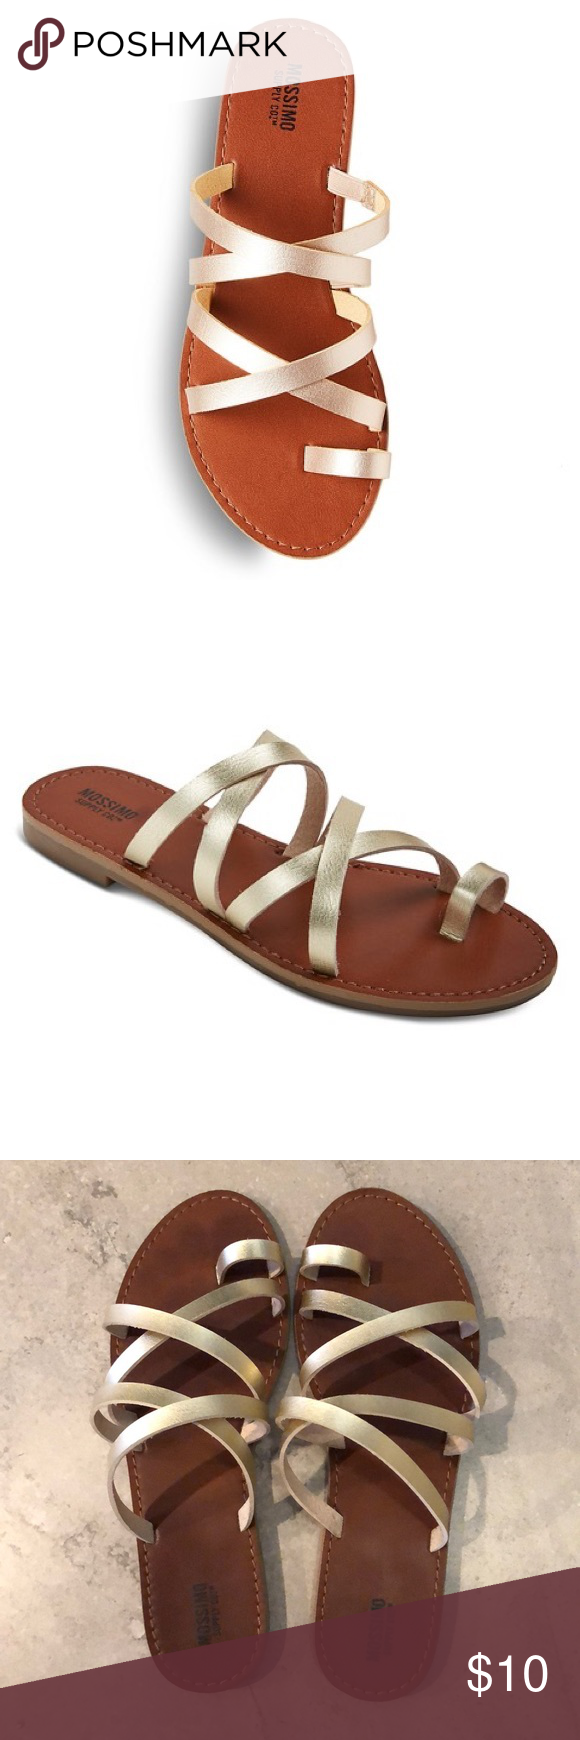 169926893010b8 Mossimo Supply Co. Lina Slide Sandals Lina slide sandal in gold. Flat  rubber sole